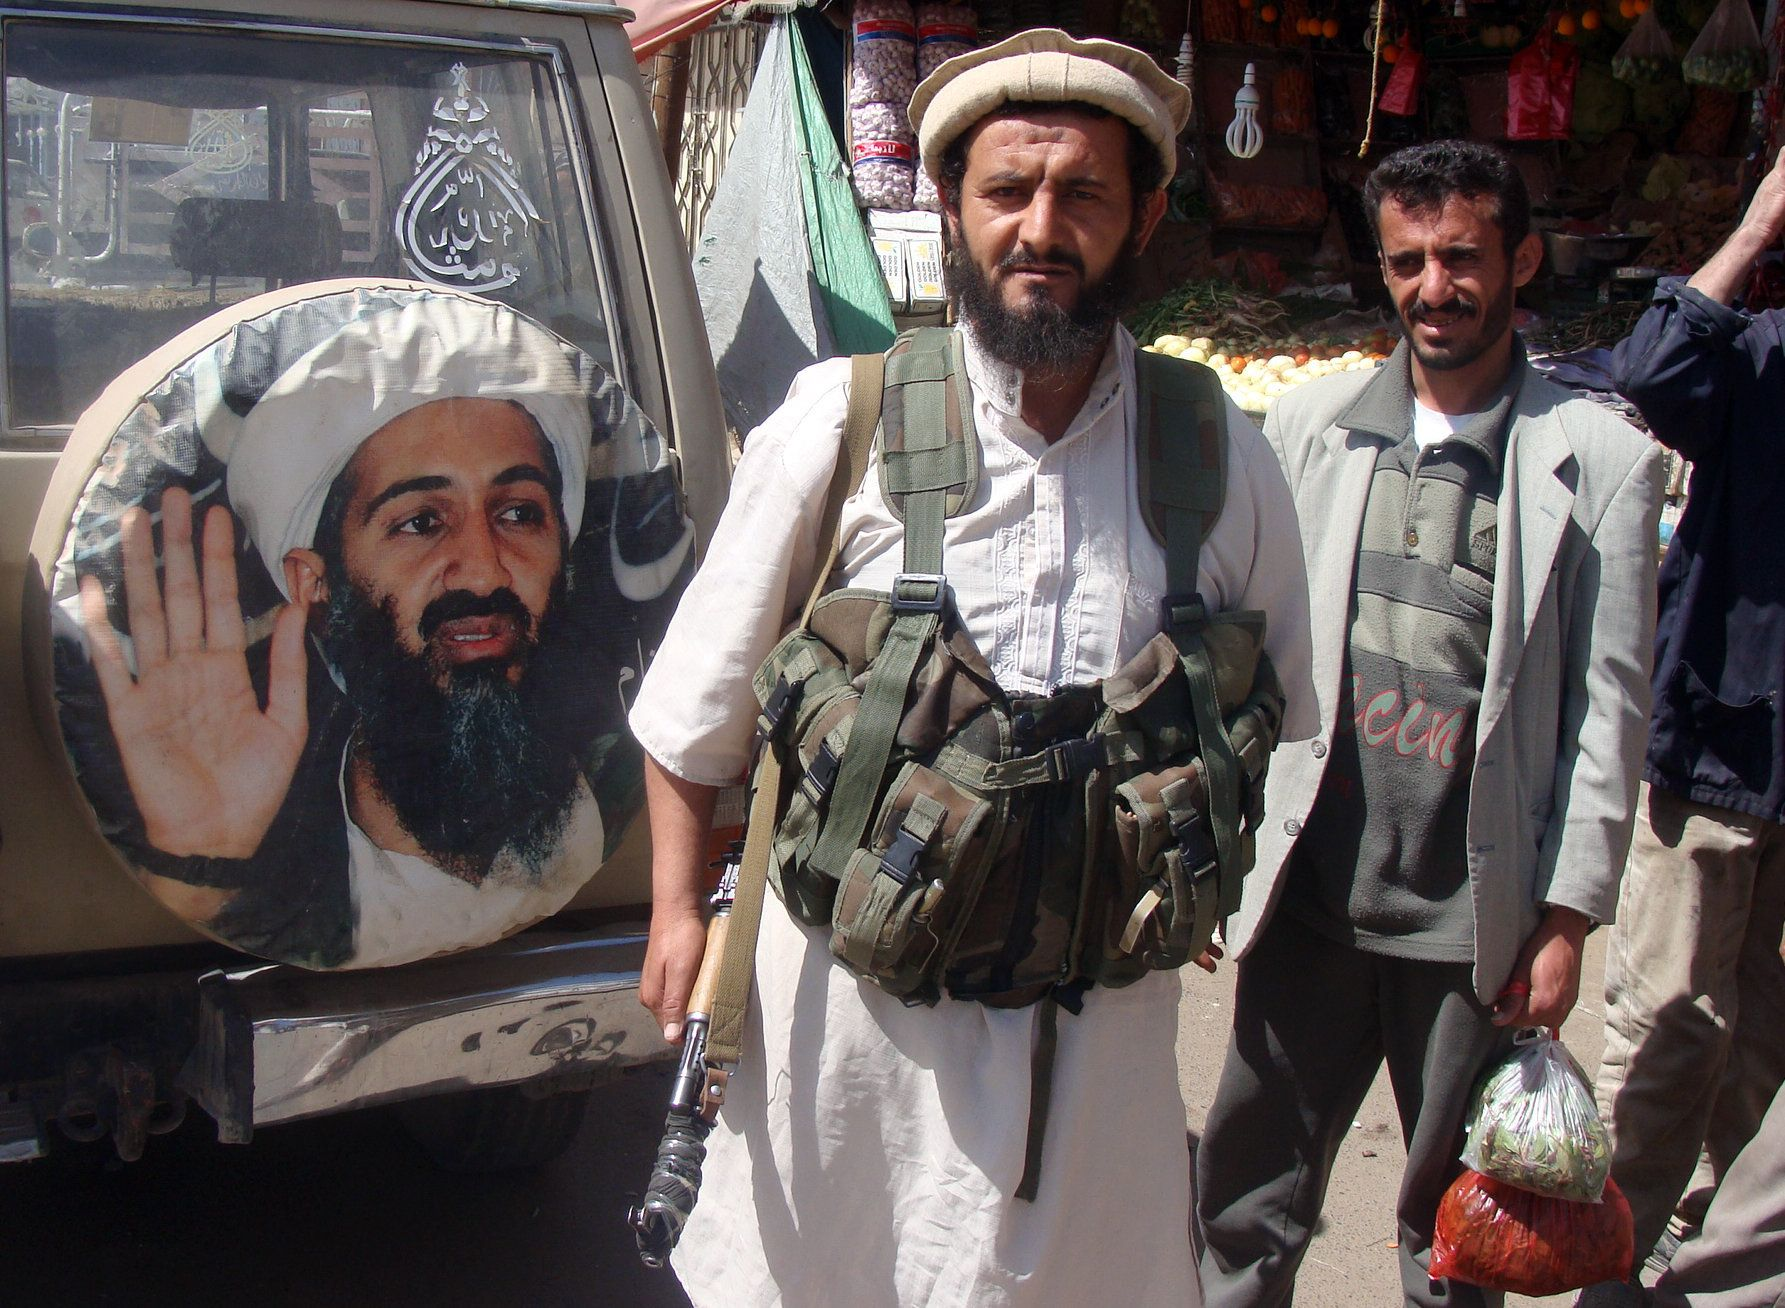 A fighter is seen standing in front of an image of Osama bin Laden, the late head of al-Qaeda, in the town of Rada, 130 kilometres (85 miles) southeast of the capital Sanaa, on January 21, 2012.  Al-Qaeda militants who seized Rada last week are making 'prohibitive' demands for pulling out, a tribal leader said, including applying sharia (Islamic law) and releasing 10 detainees held in the US run held at Guantanamo prison on the island of Cuba. Al-Qaeda-linked militants control a string of towns in Abyan, Shabwa and Marib provinces, but Rada, in al-Bayda province, is the closest they have reached to the capital.    AFP PHOTO/STR (Photo credit should read -/AFP/Getty Images)